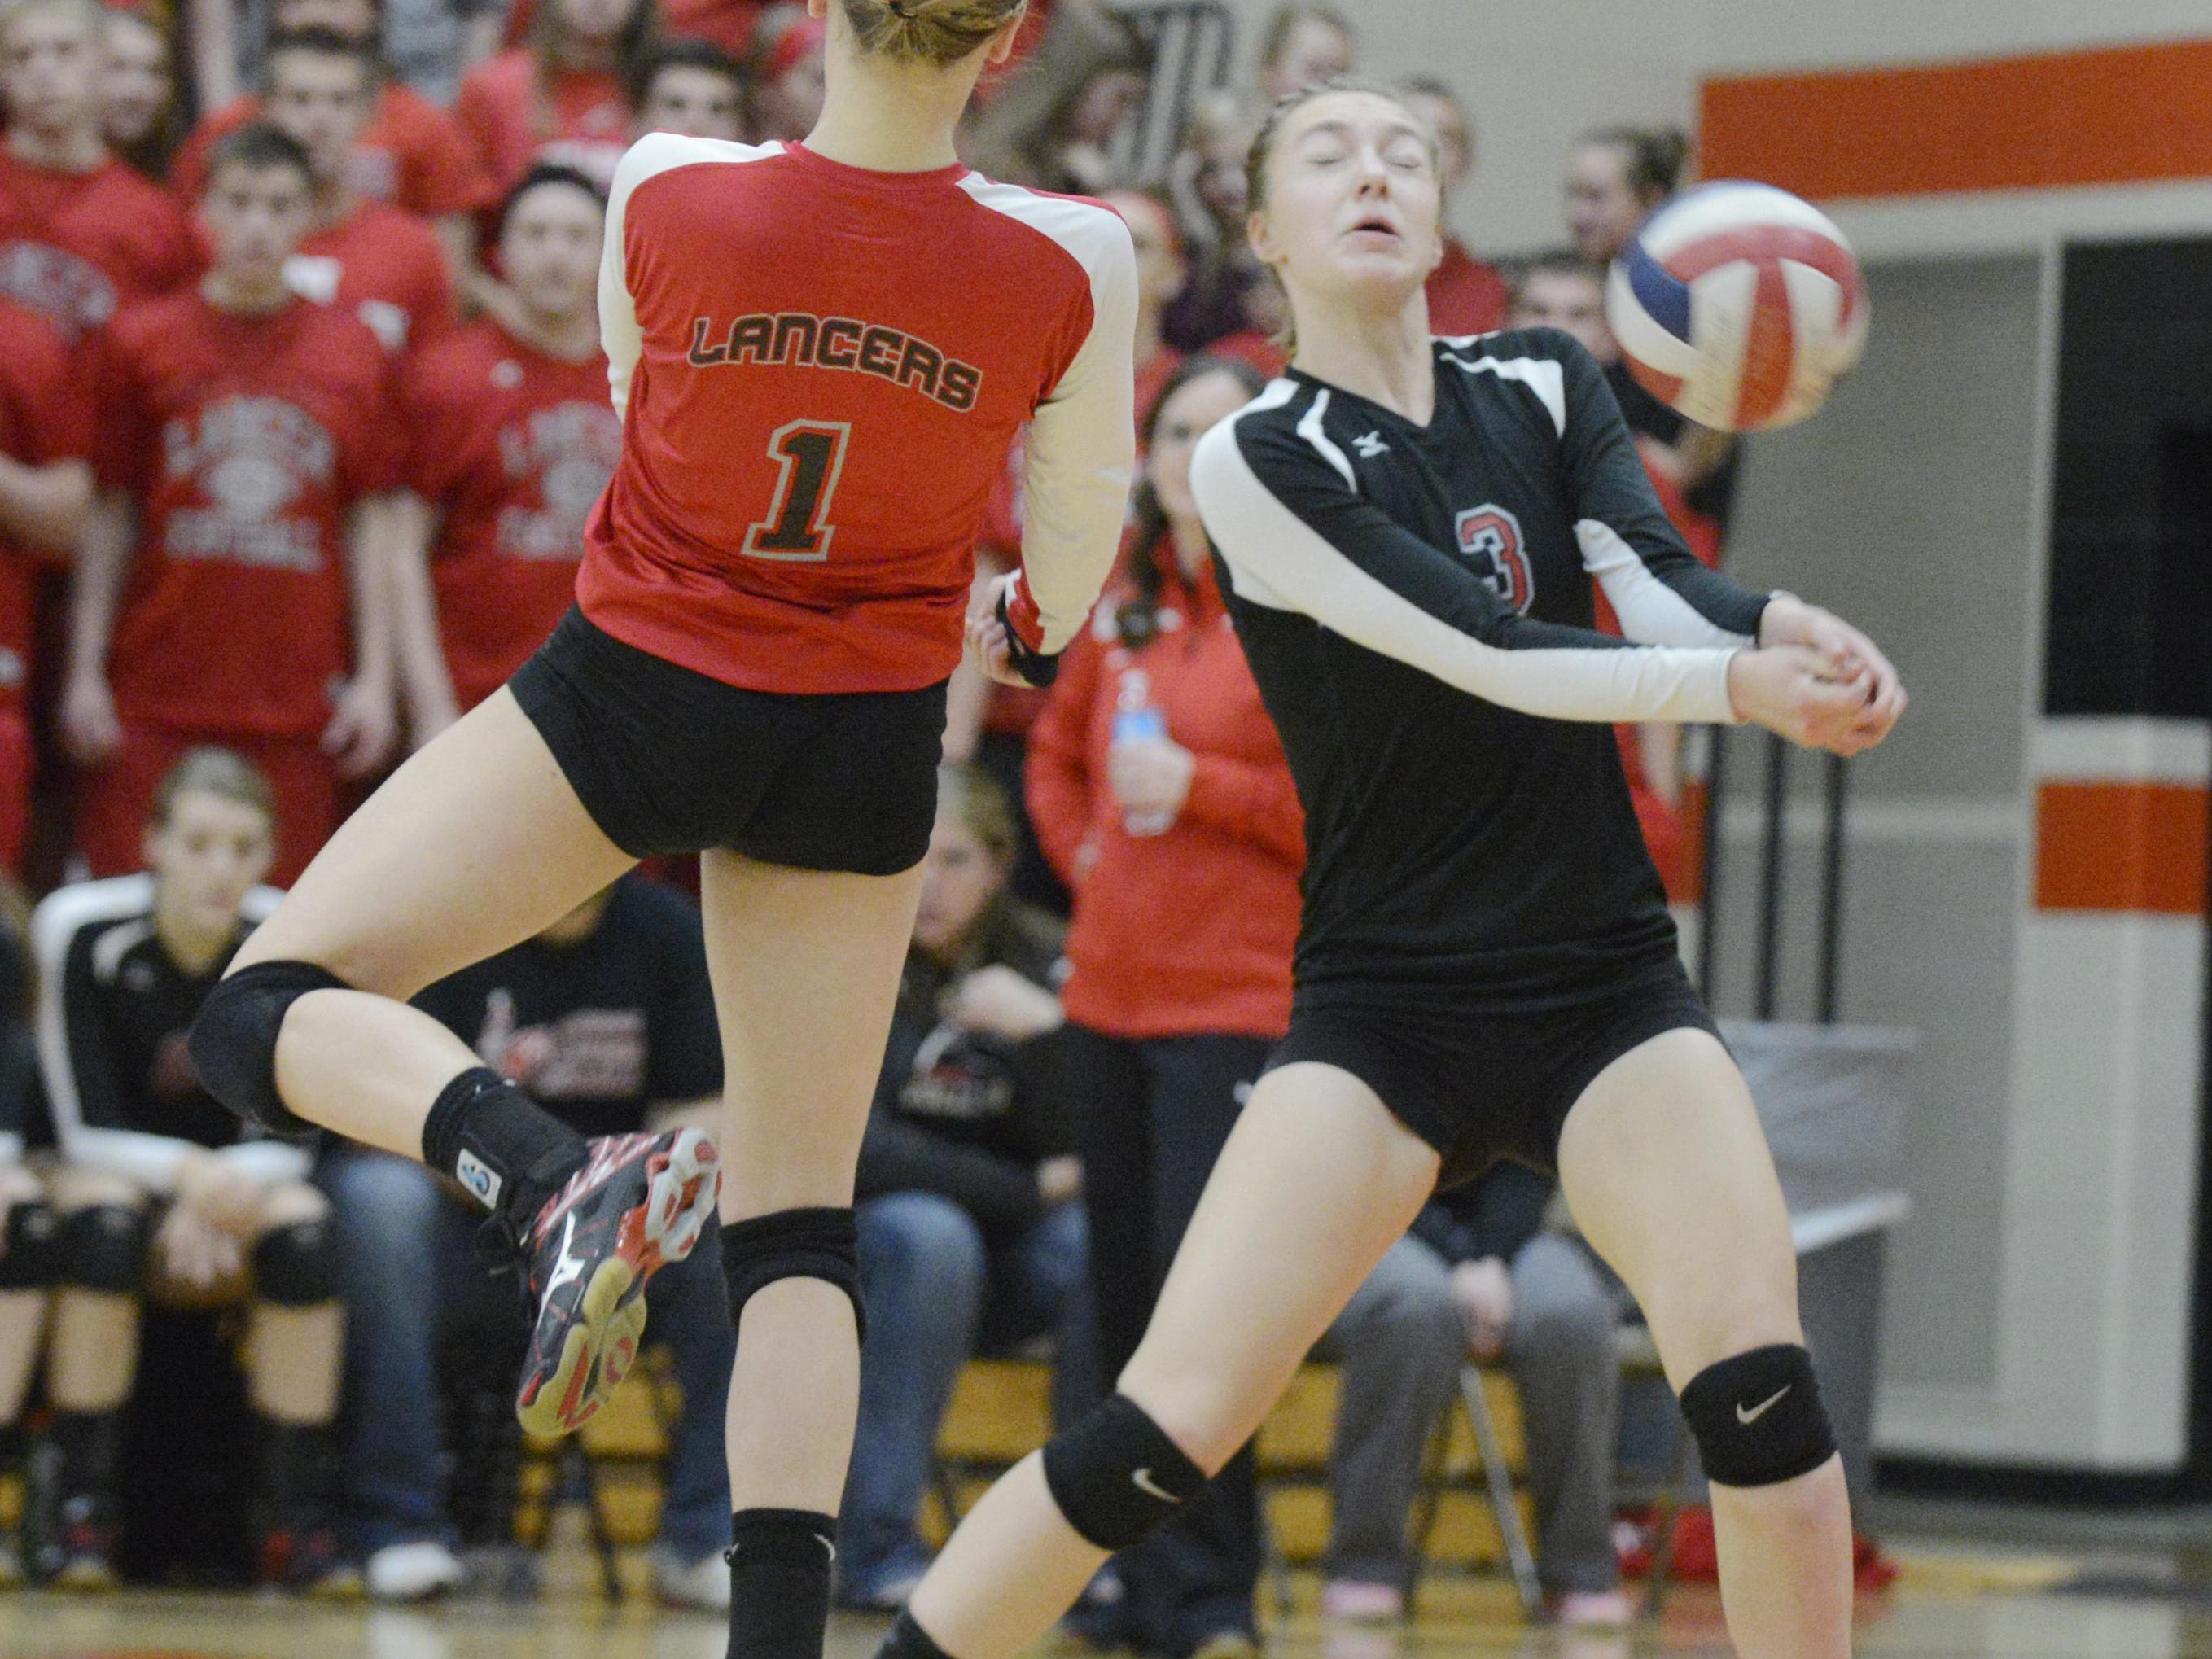 Manitowoc Lutheran's Madeline Schleis, left, and Amanda Pautz both try to hit the ball during a game at the WIAA Division 3 Sectional Semifinals against Howards Grove at Reedsville Middle School on Thursday, Oct. 29 in Reedsville. The Lancers fell to the Tigers 3-0.